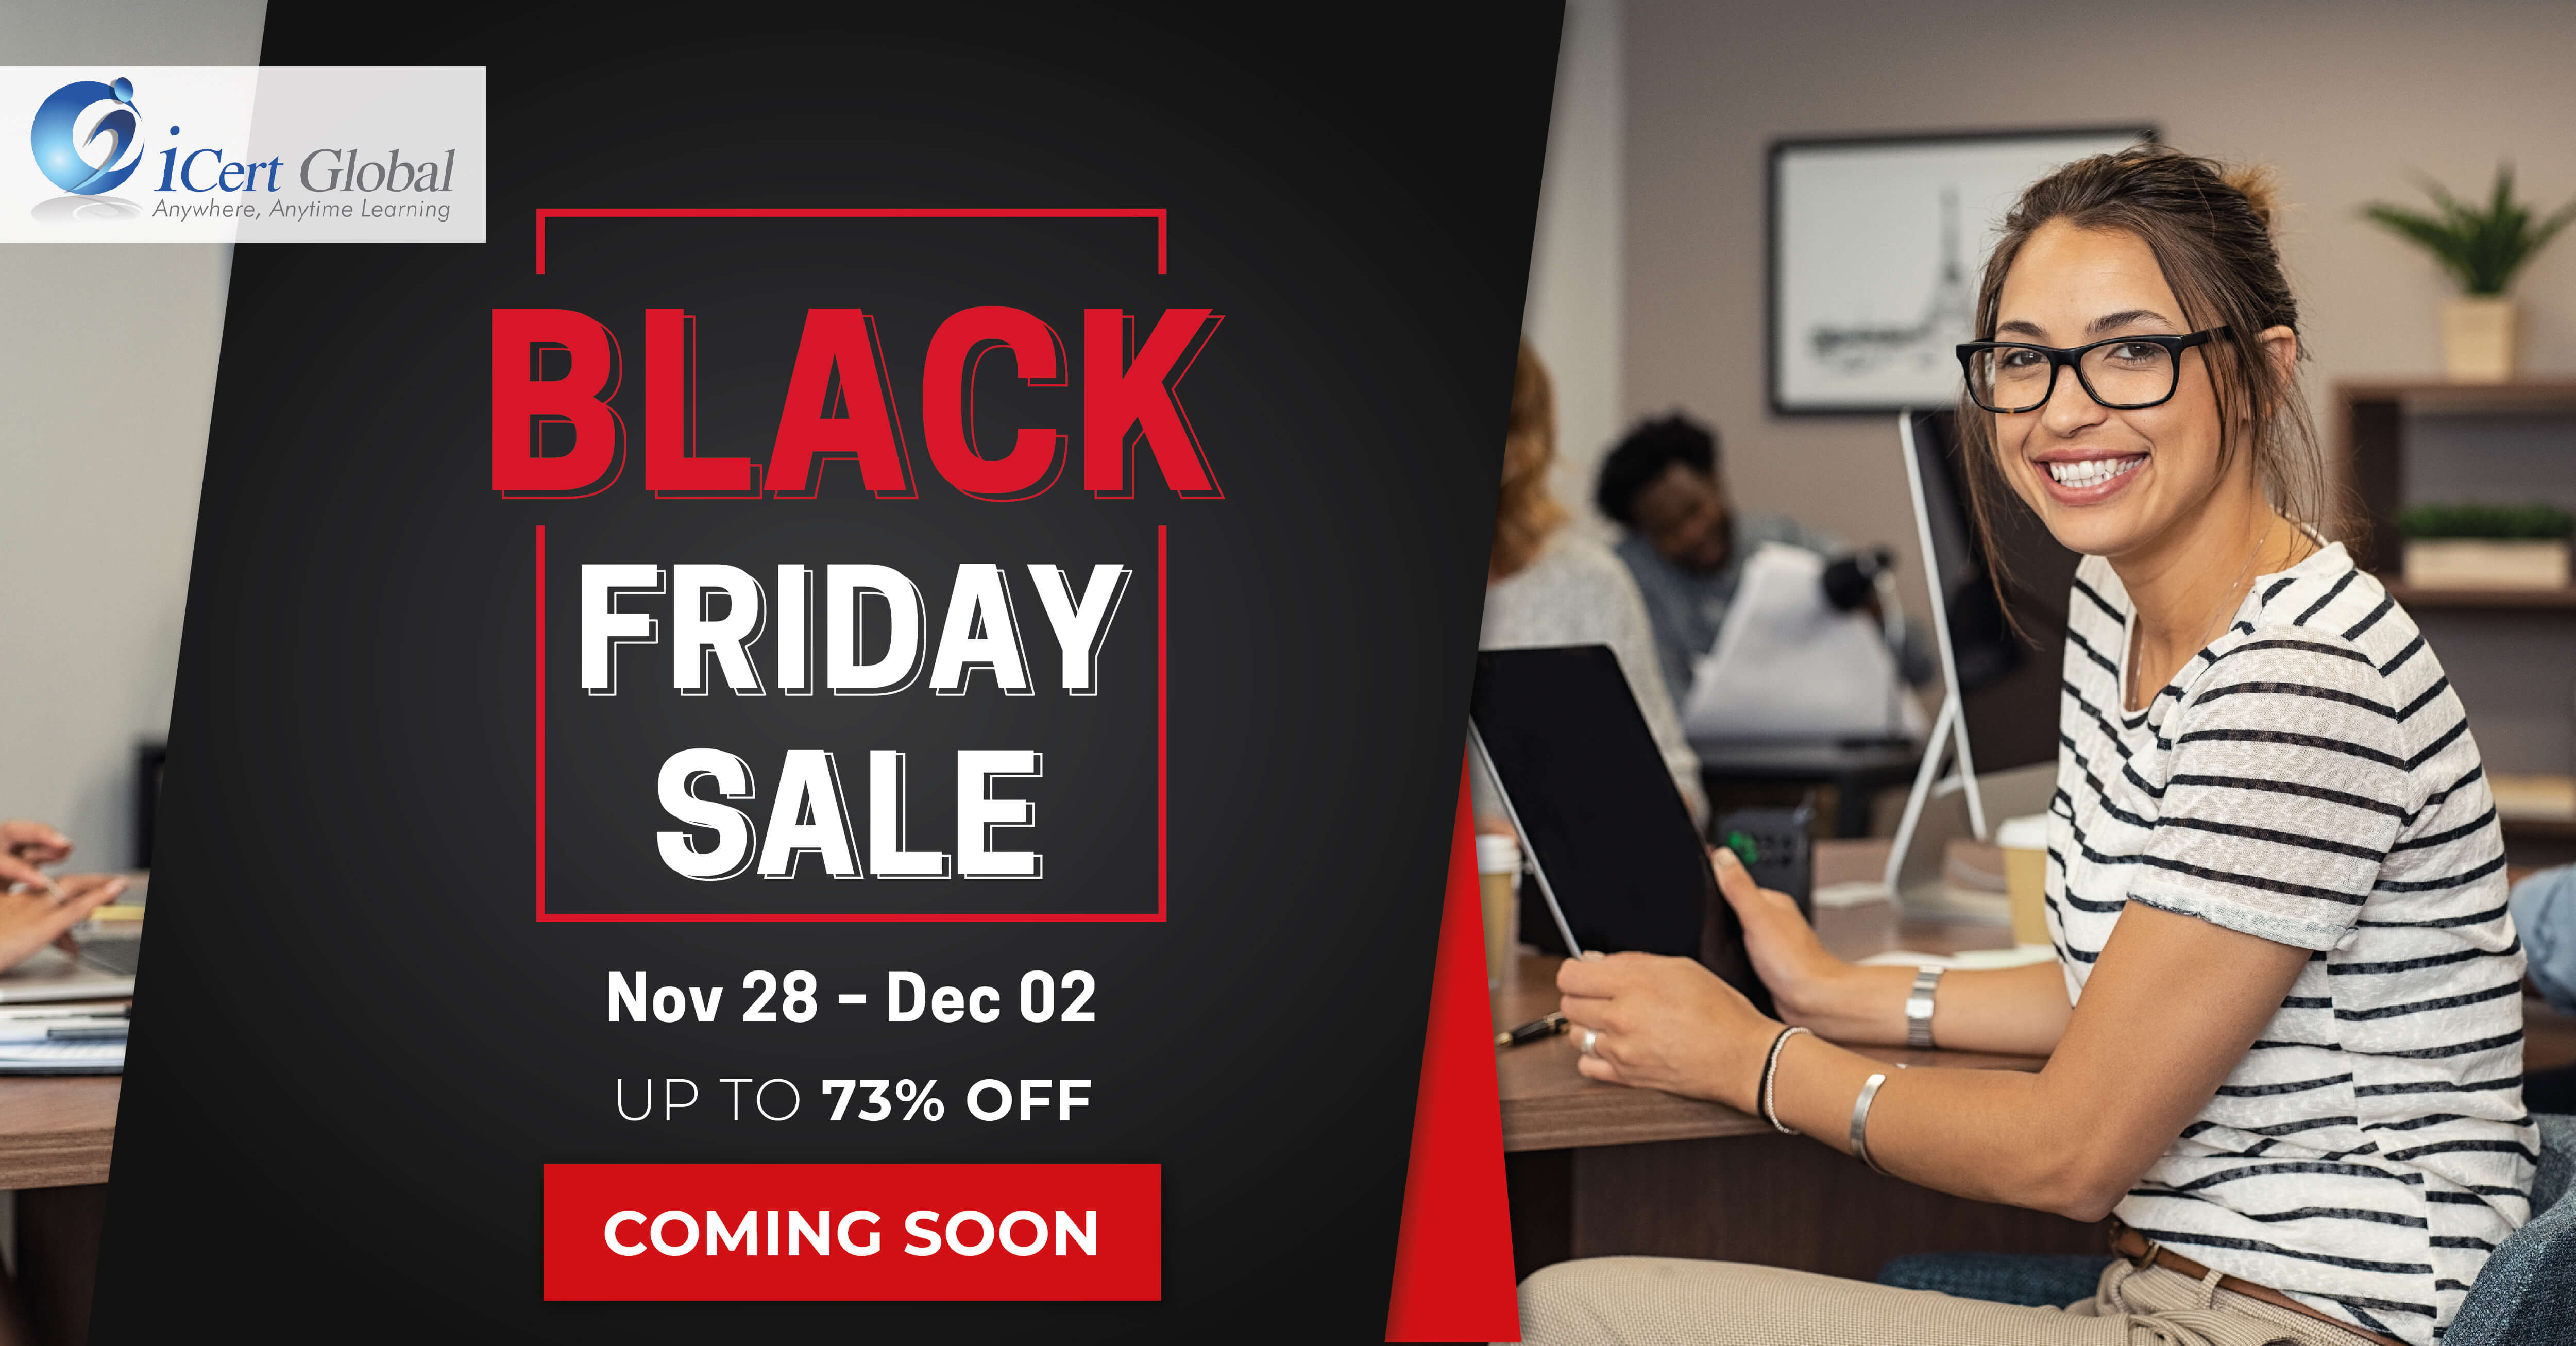 Black Friday Sale November 28 to December 02, 2019 - Buy Now! Up to 73% Off